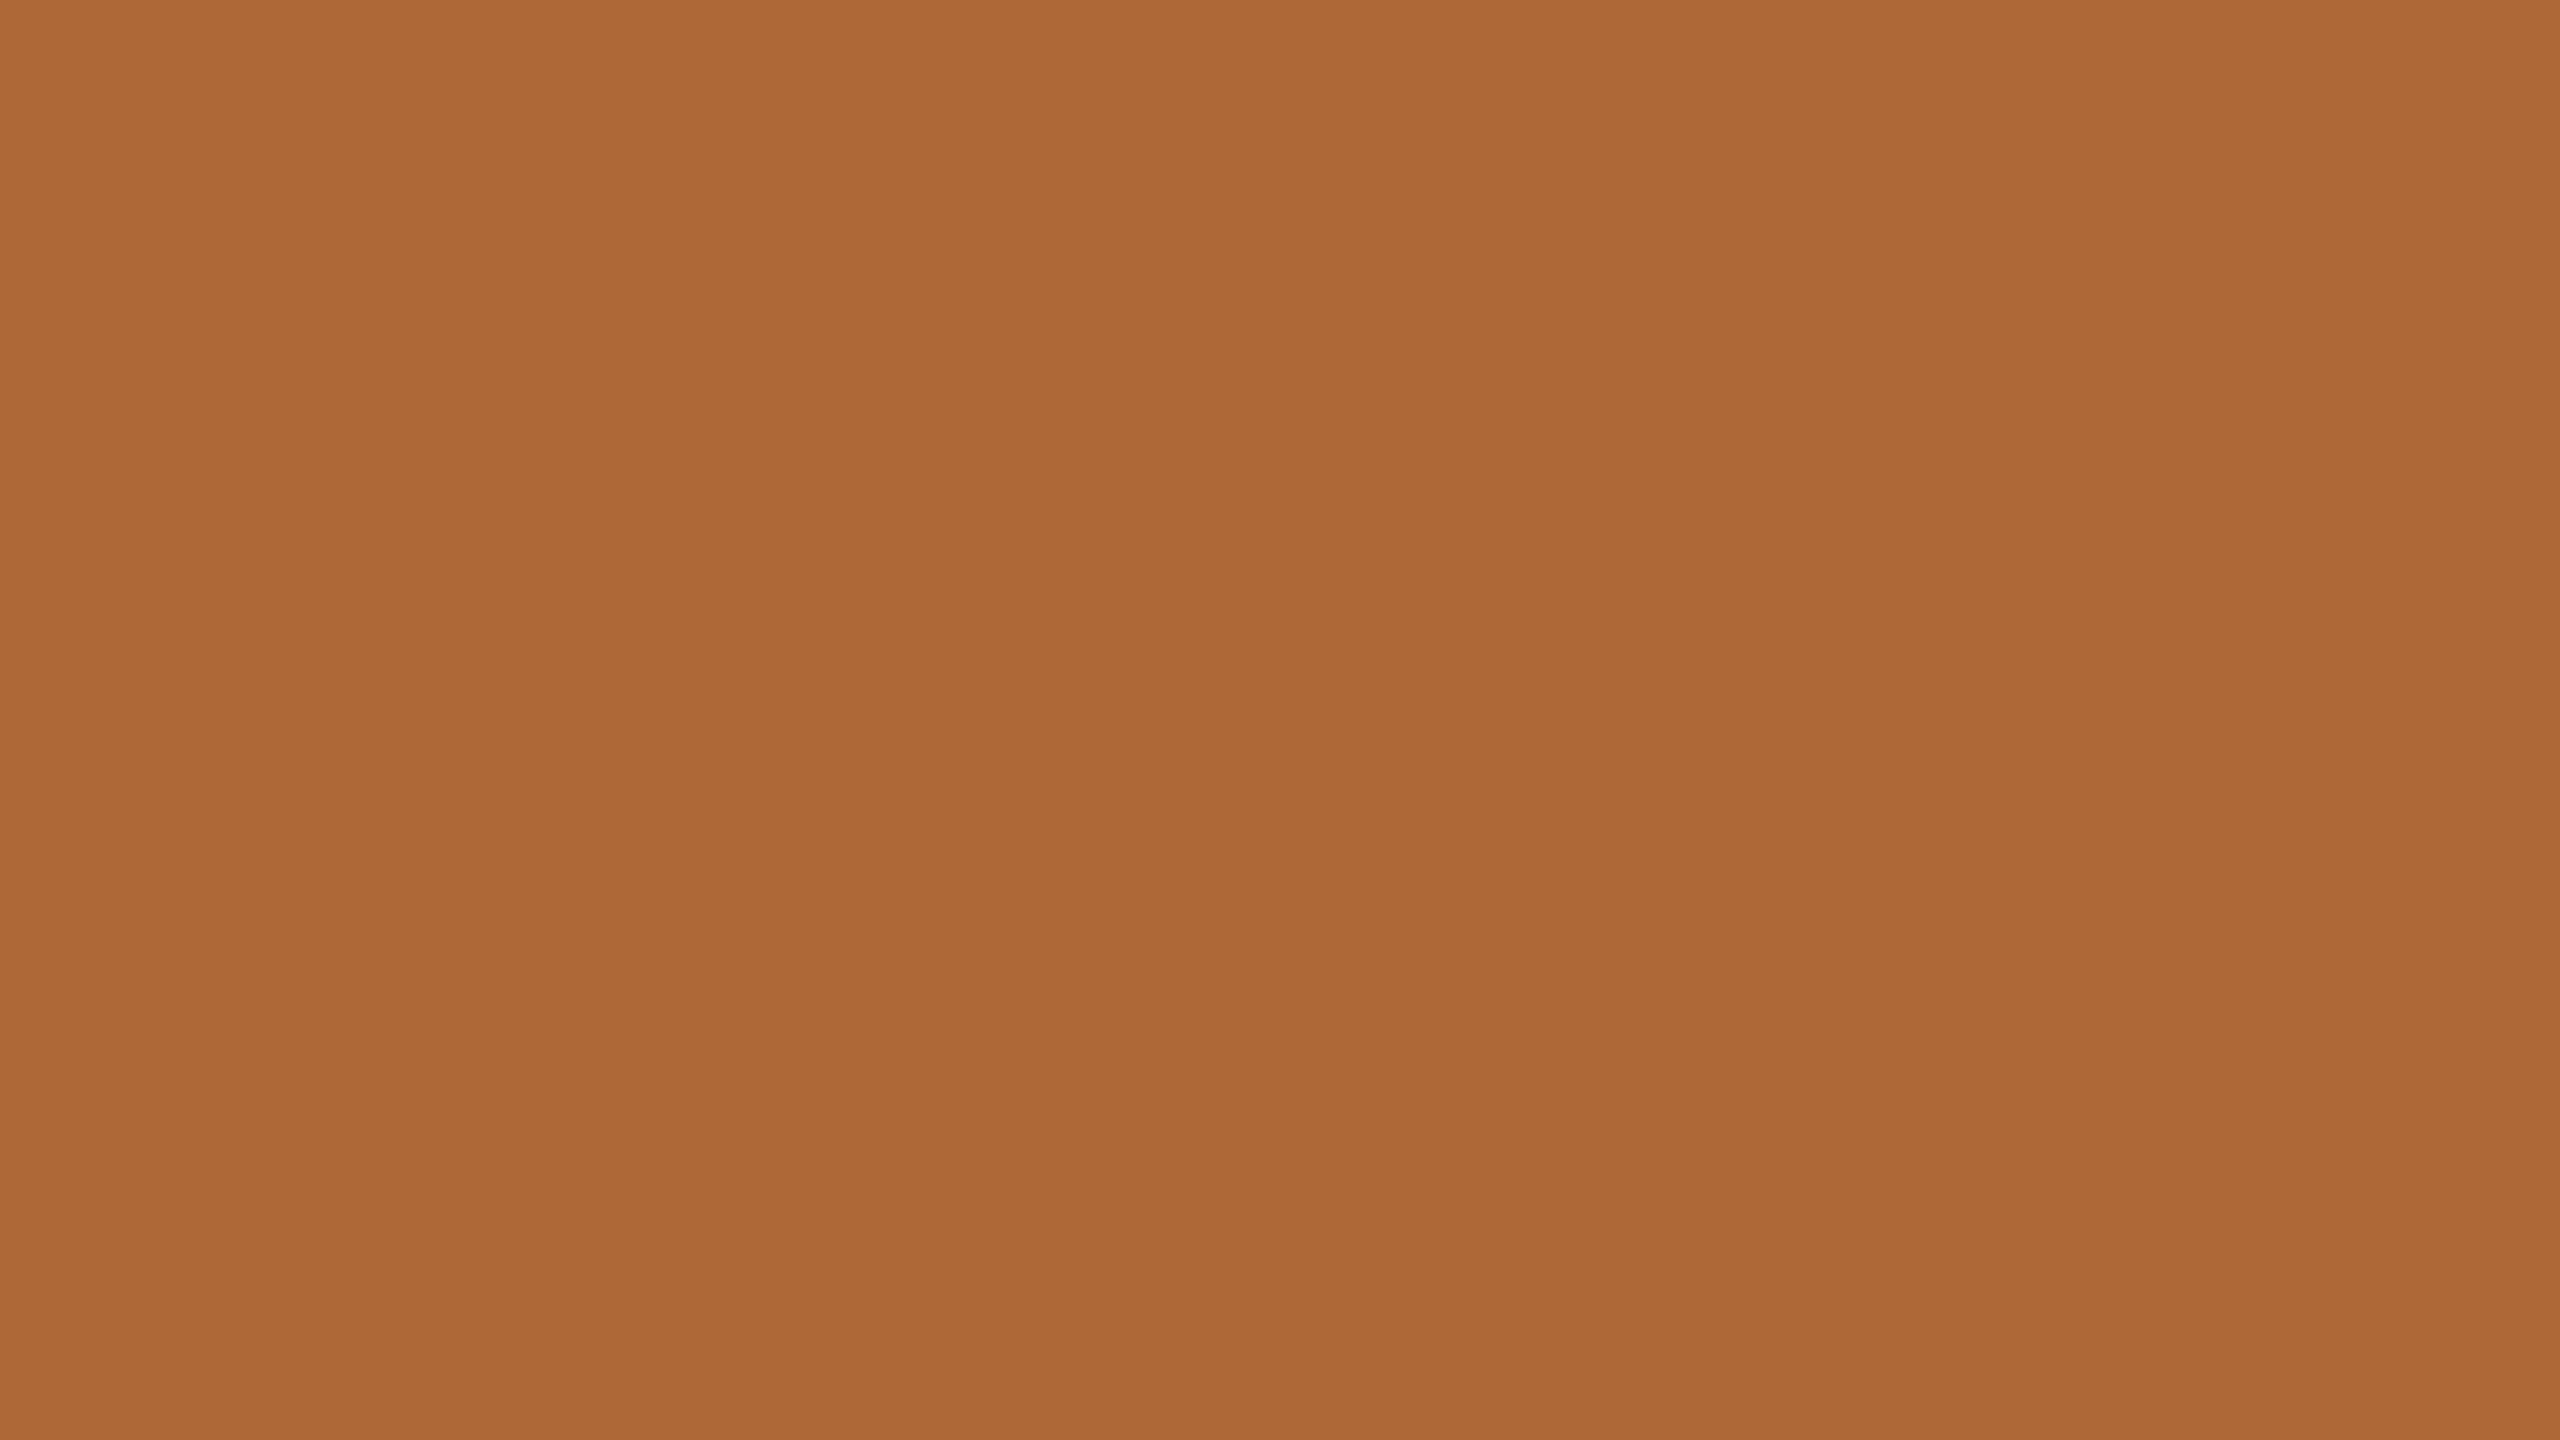 2560x1440 Windsor Tan Solid Color Background